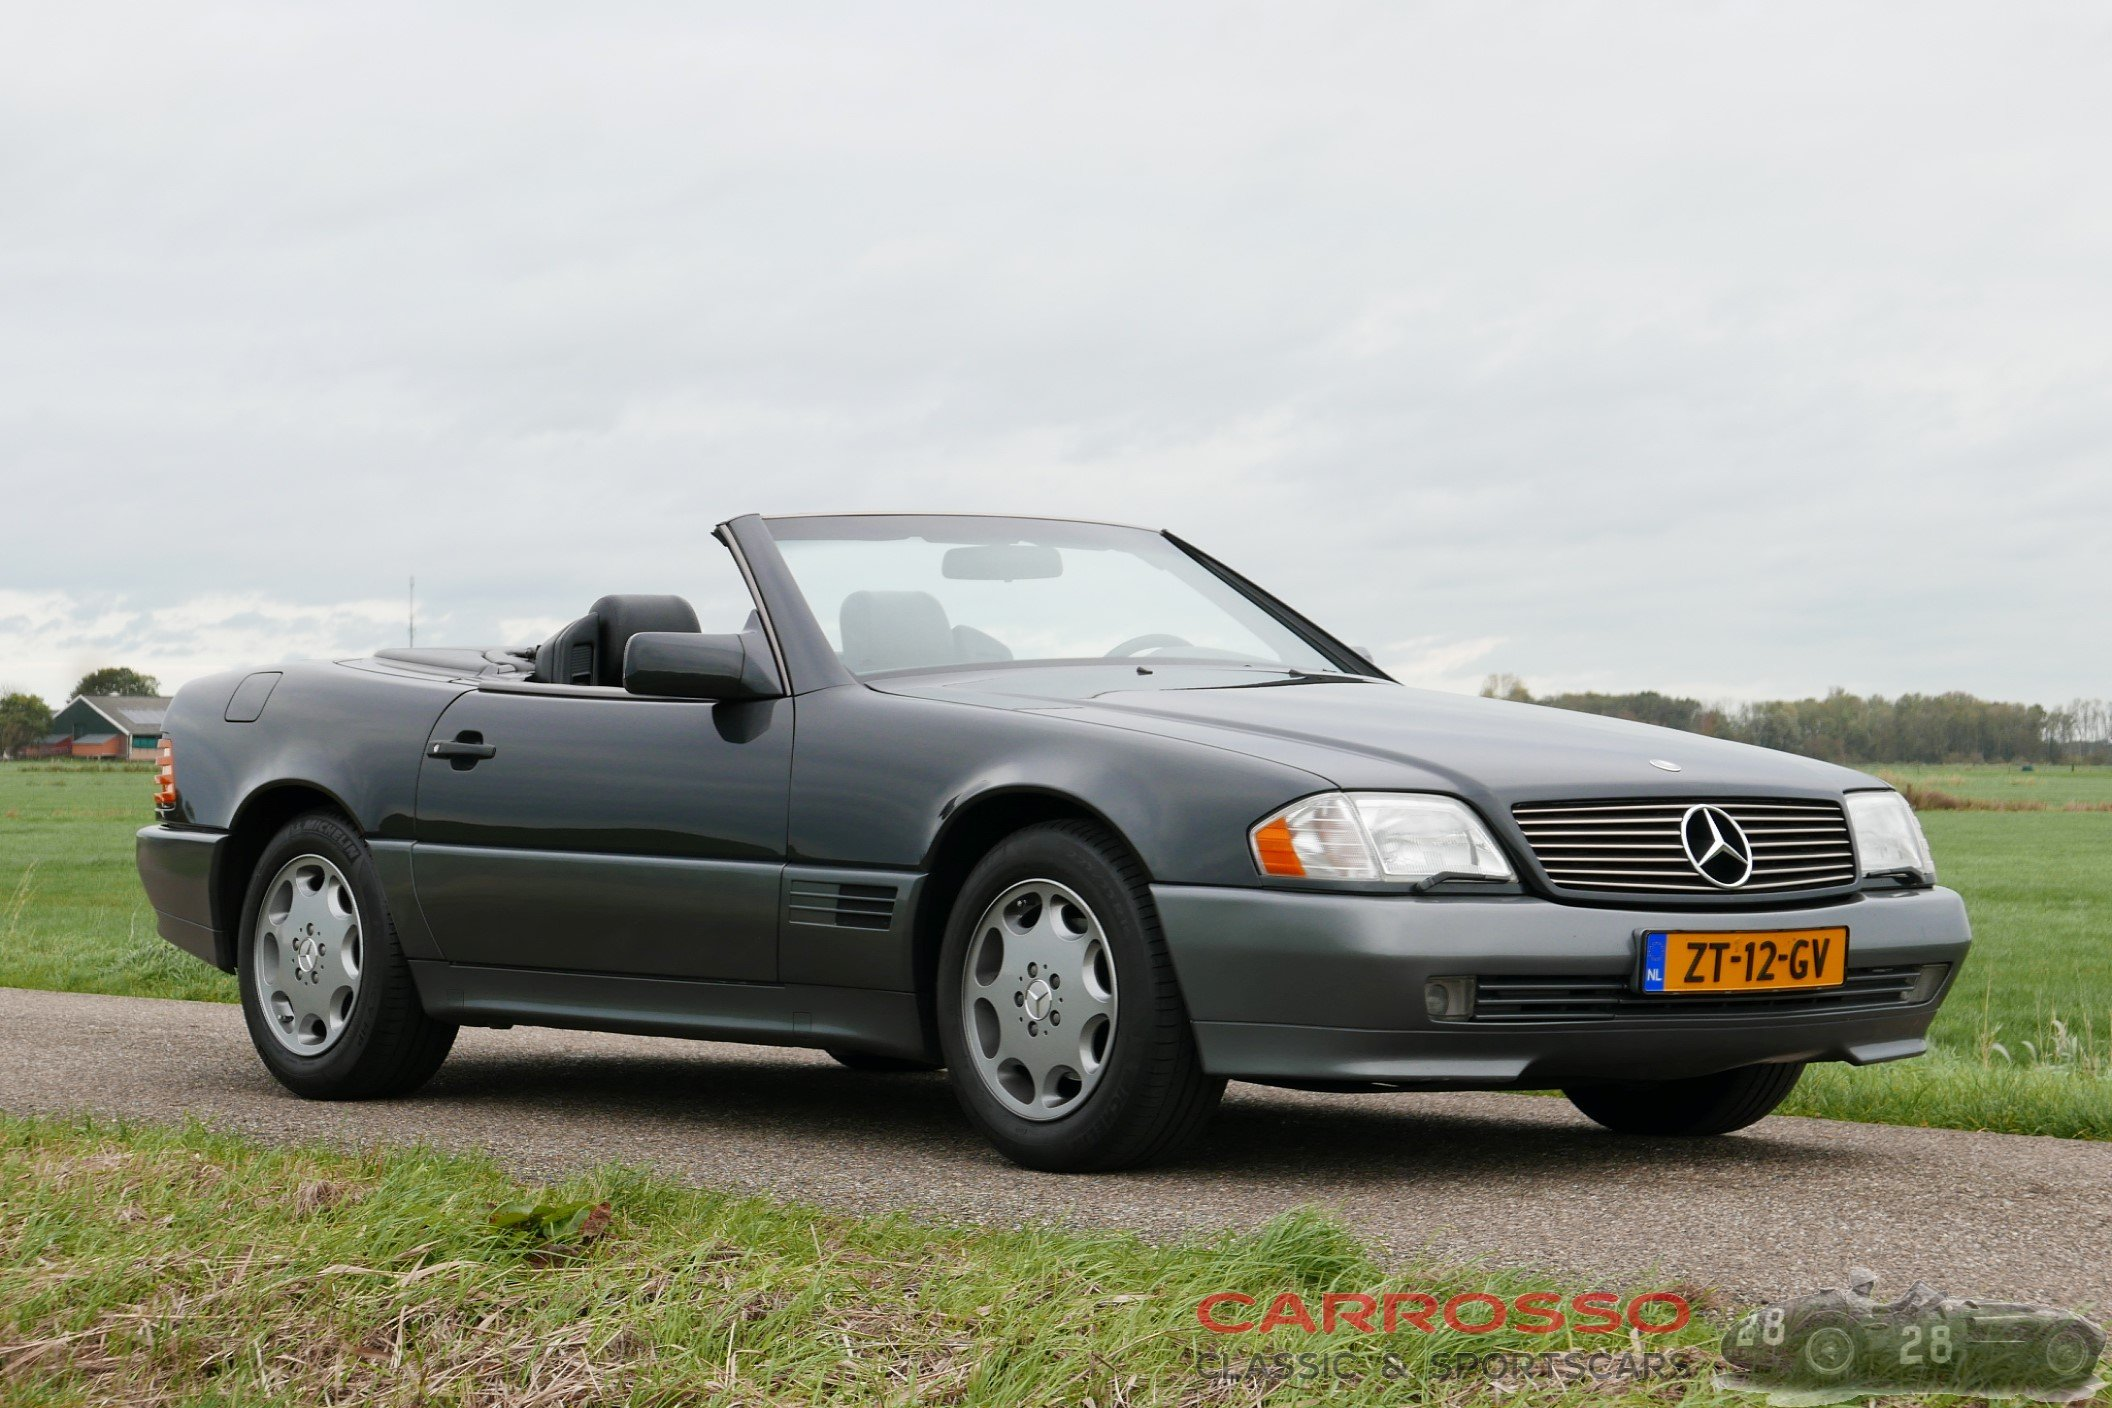 1Mercedes Benz SL 300 (47)